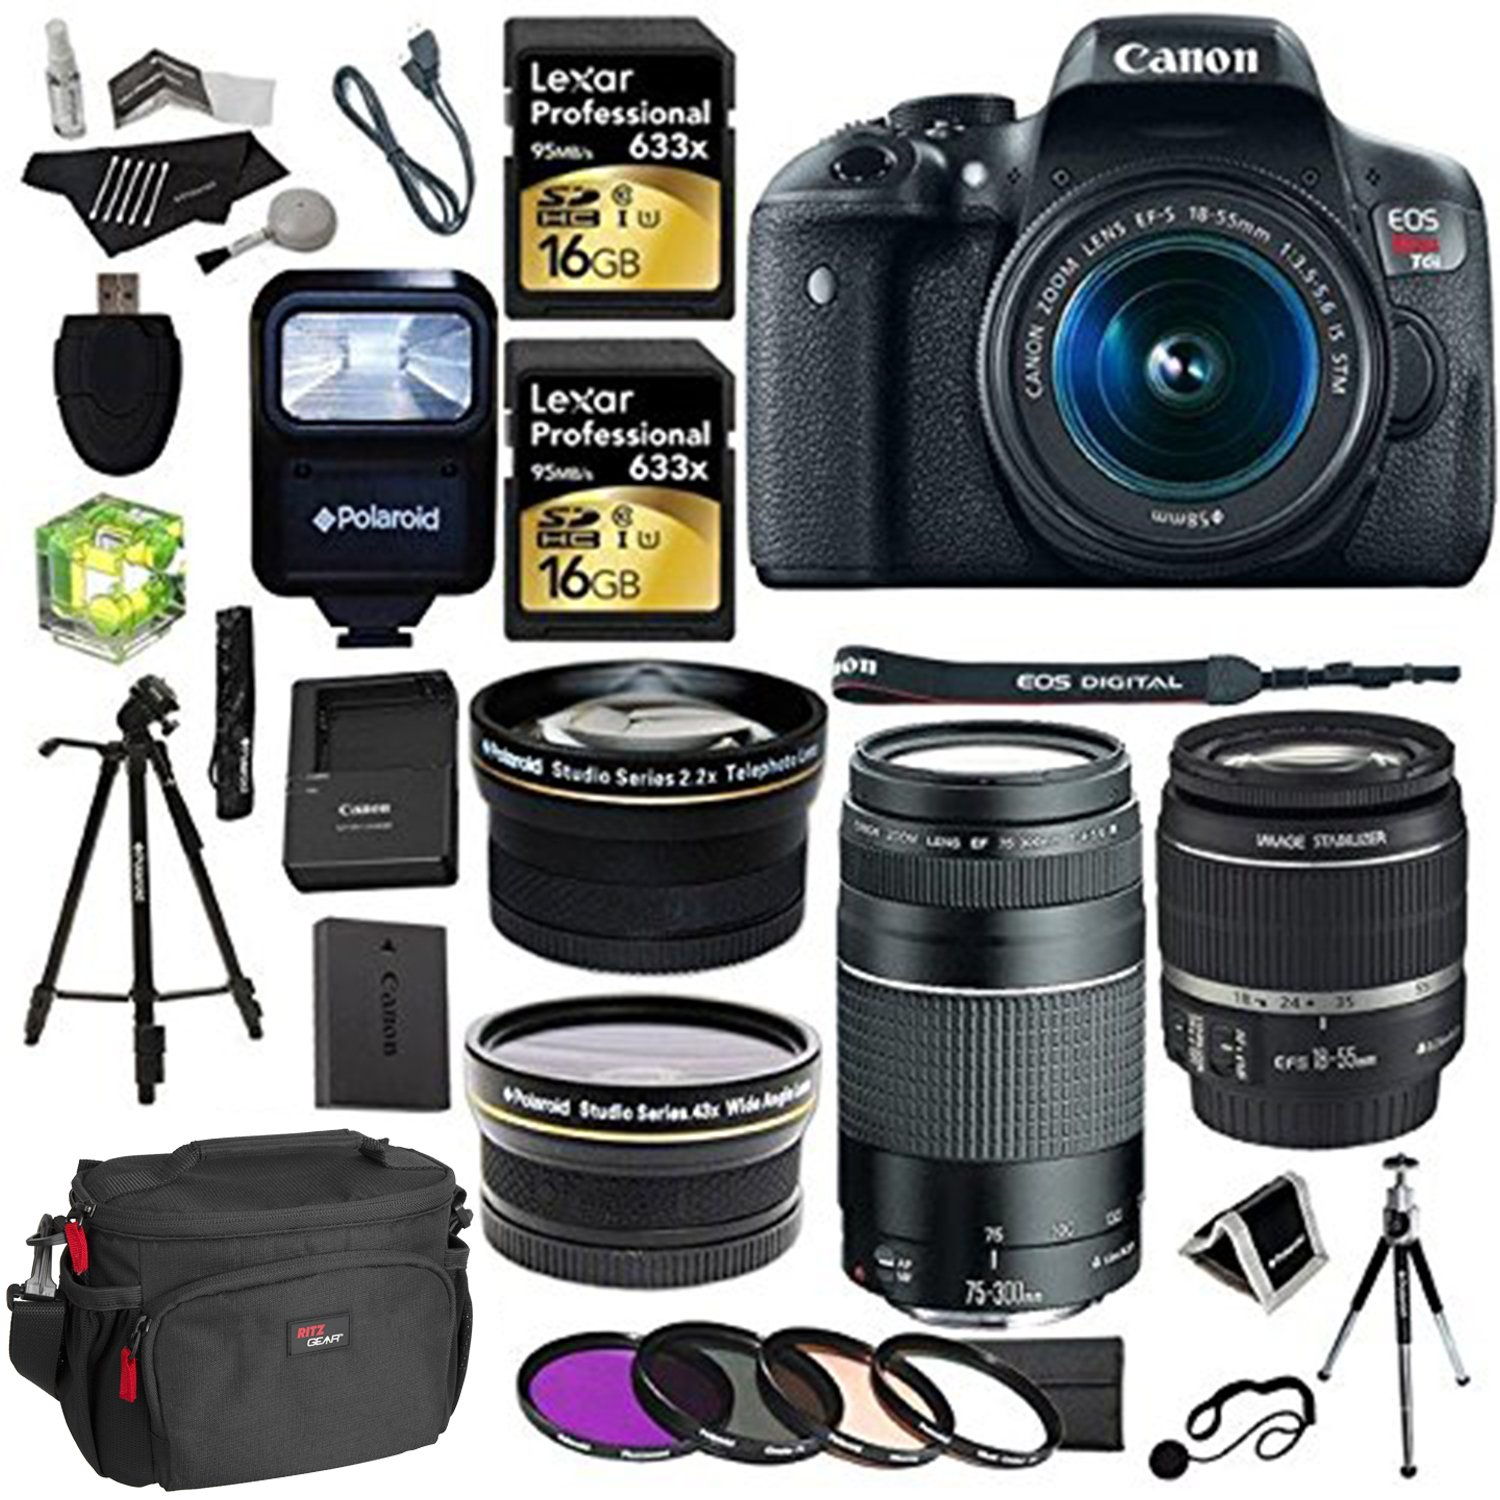 Canon EOS Rebel T6i 24.2 MP Digital SLR Camera with 18-55mm STM Lens + Canon EF 75-300mm f/4-5.6 III Lens  ..